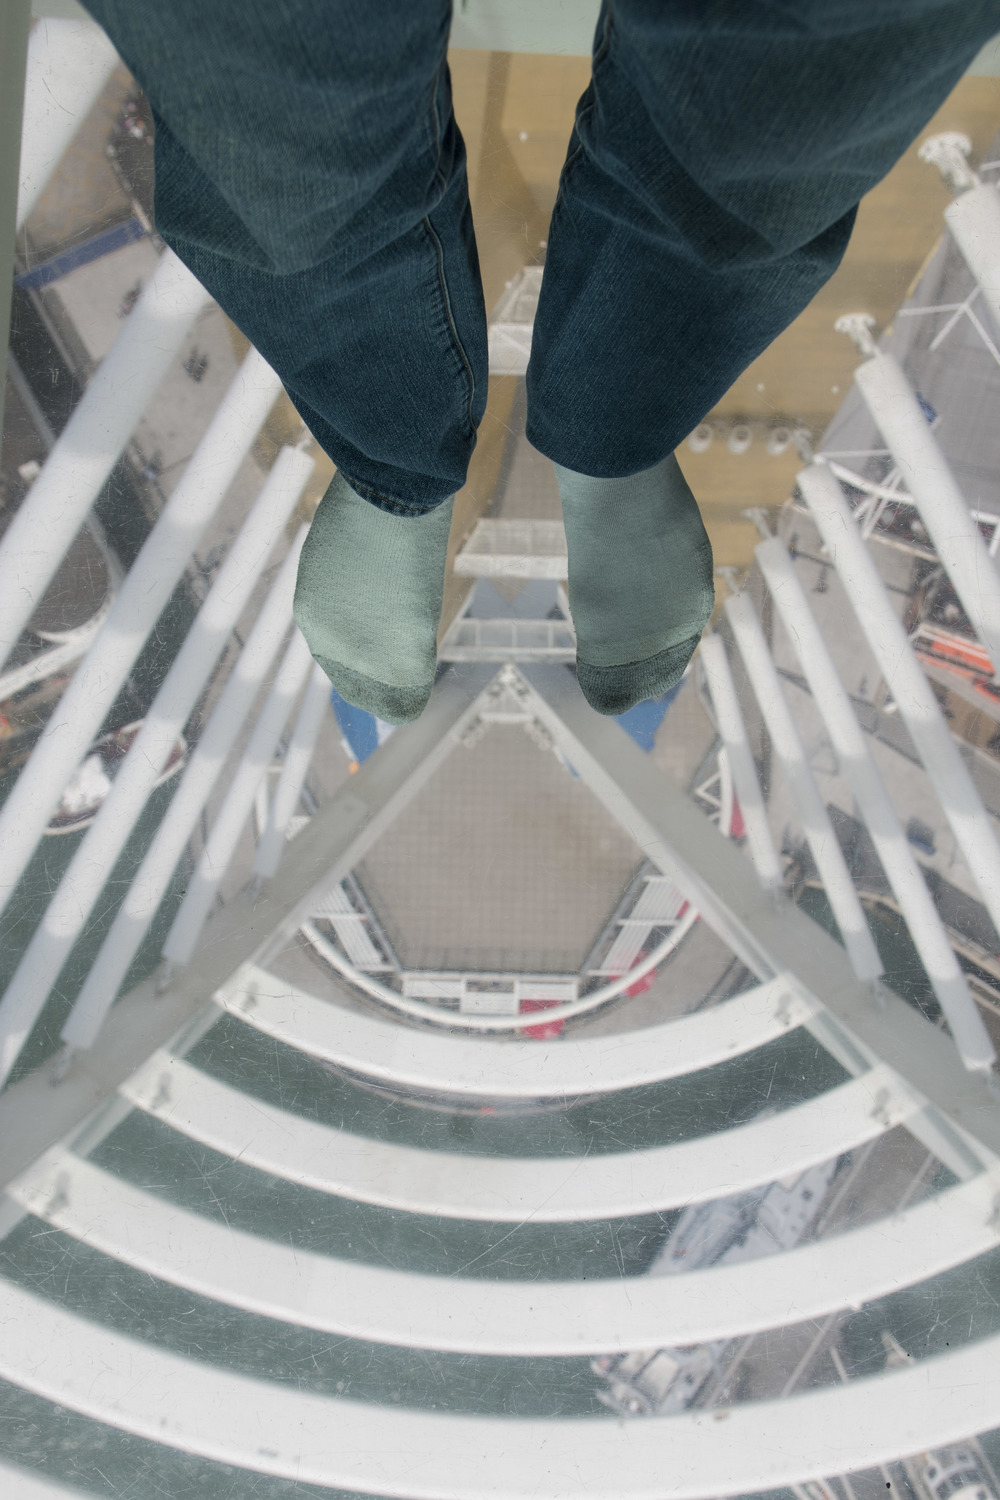 Inches of glass between me and a 300ft drop